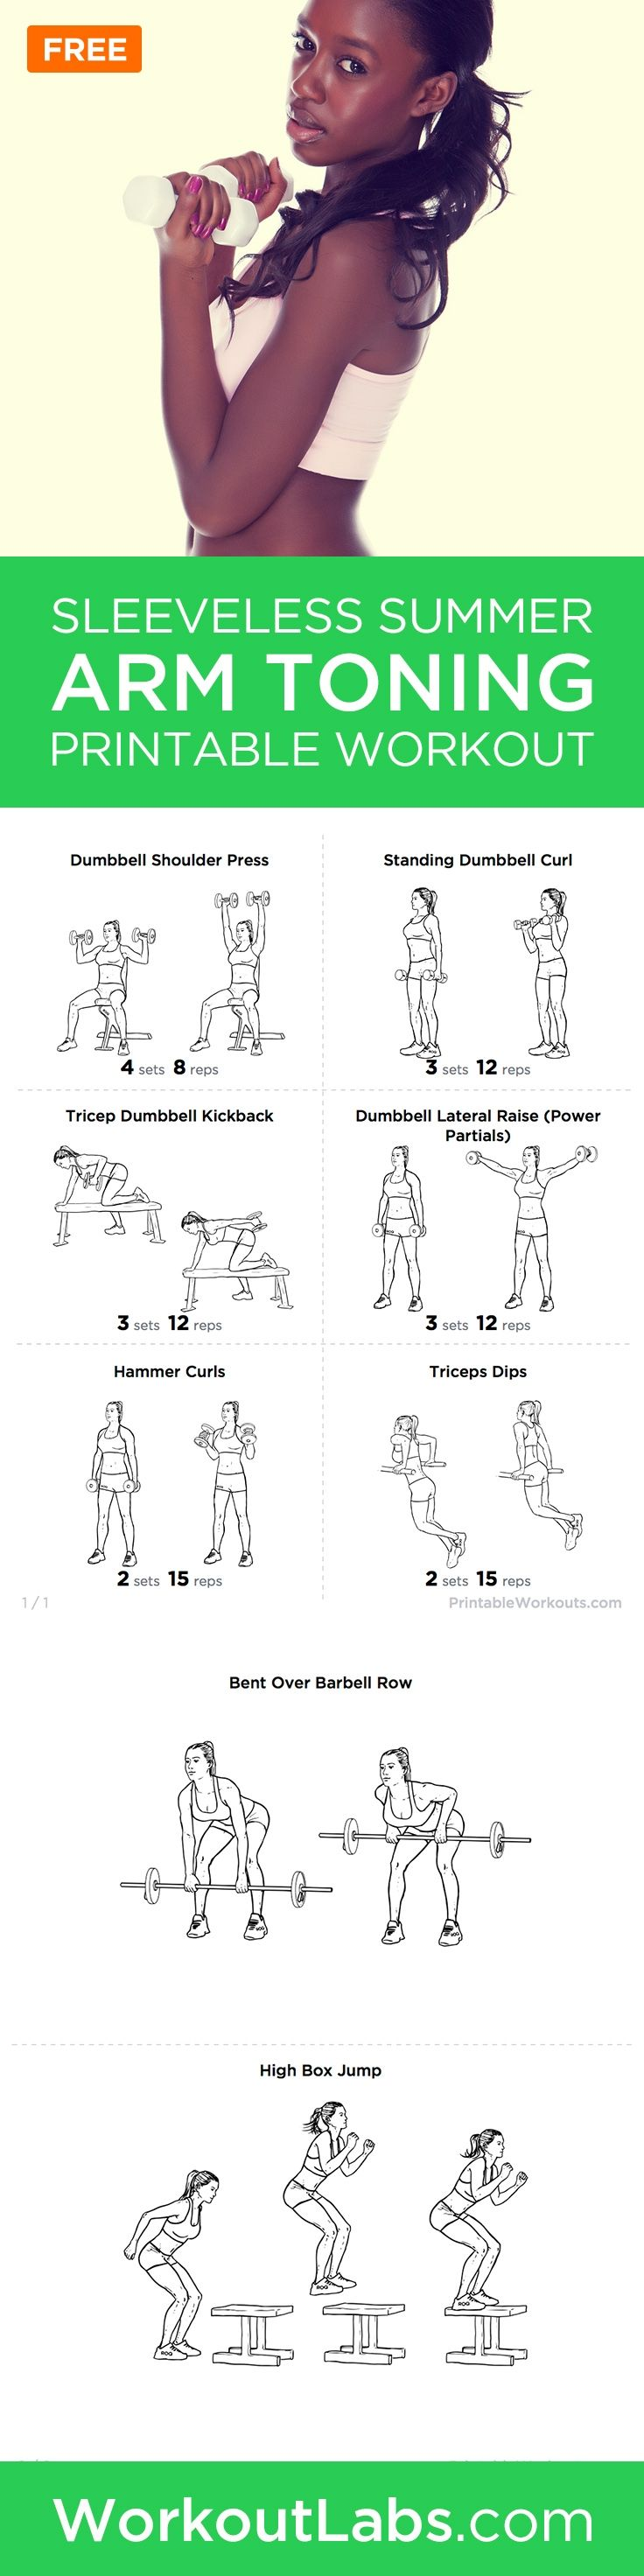 Summer Sleeveless Arms 15-minute Toning Printable Workout #weightlossrecipes